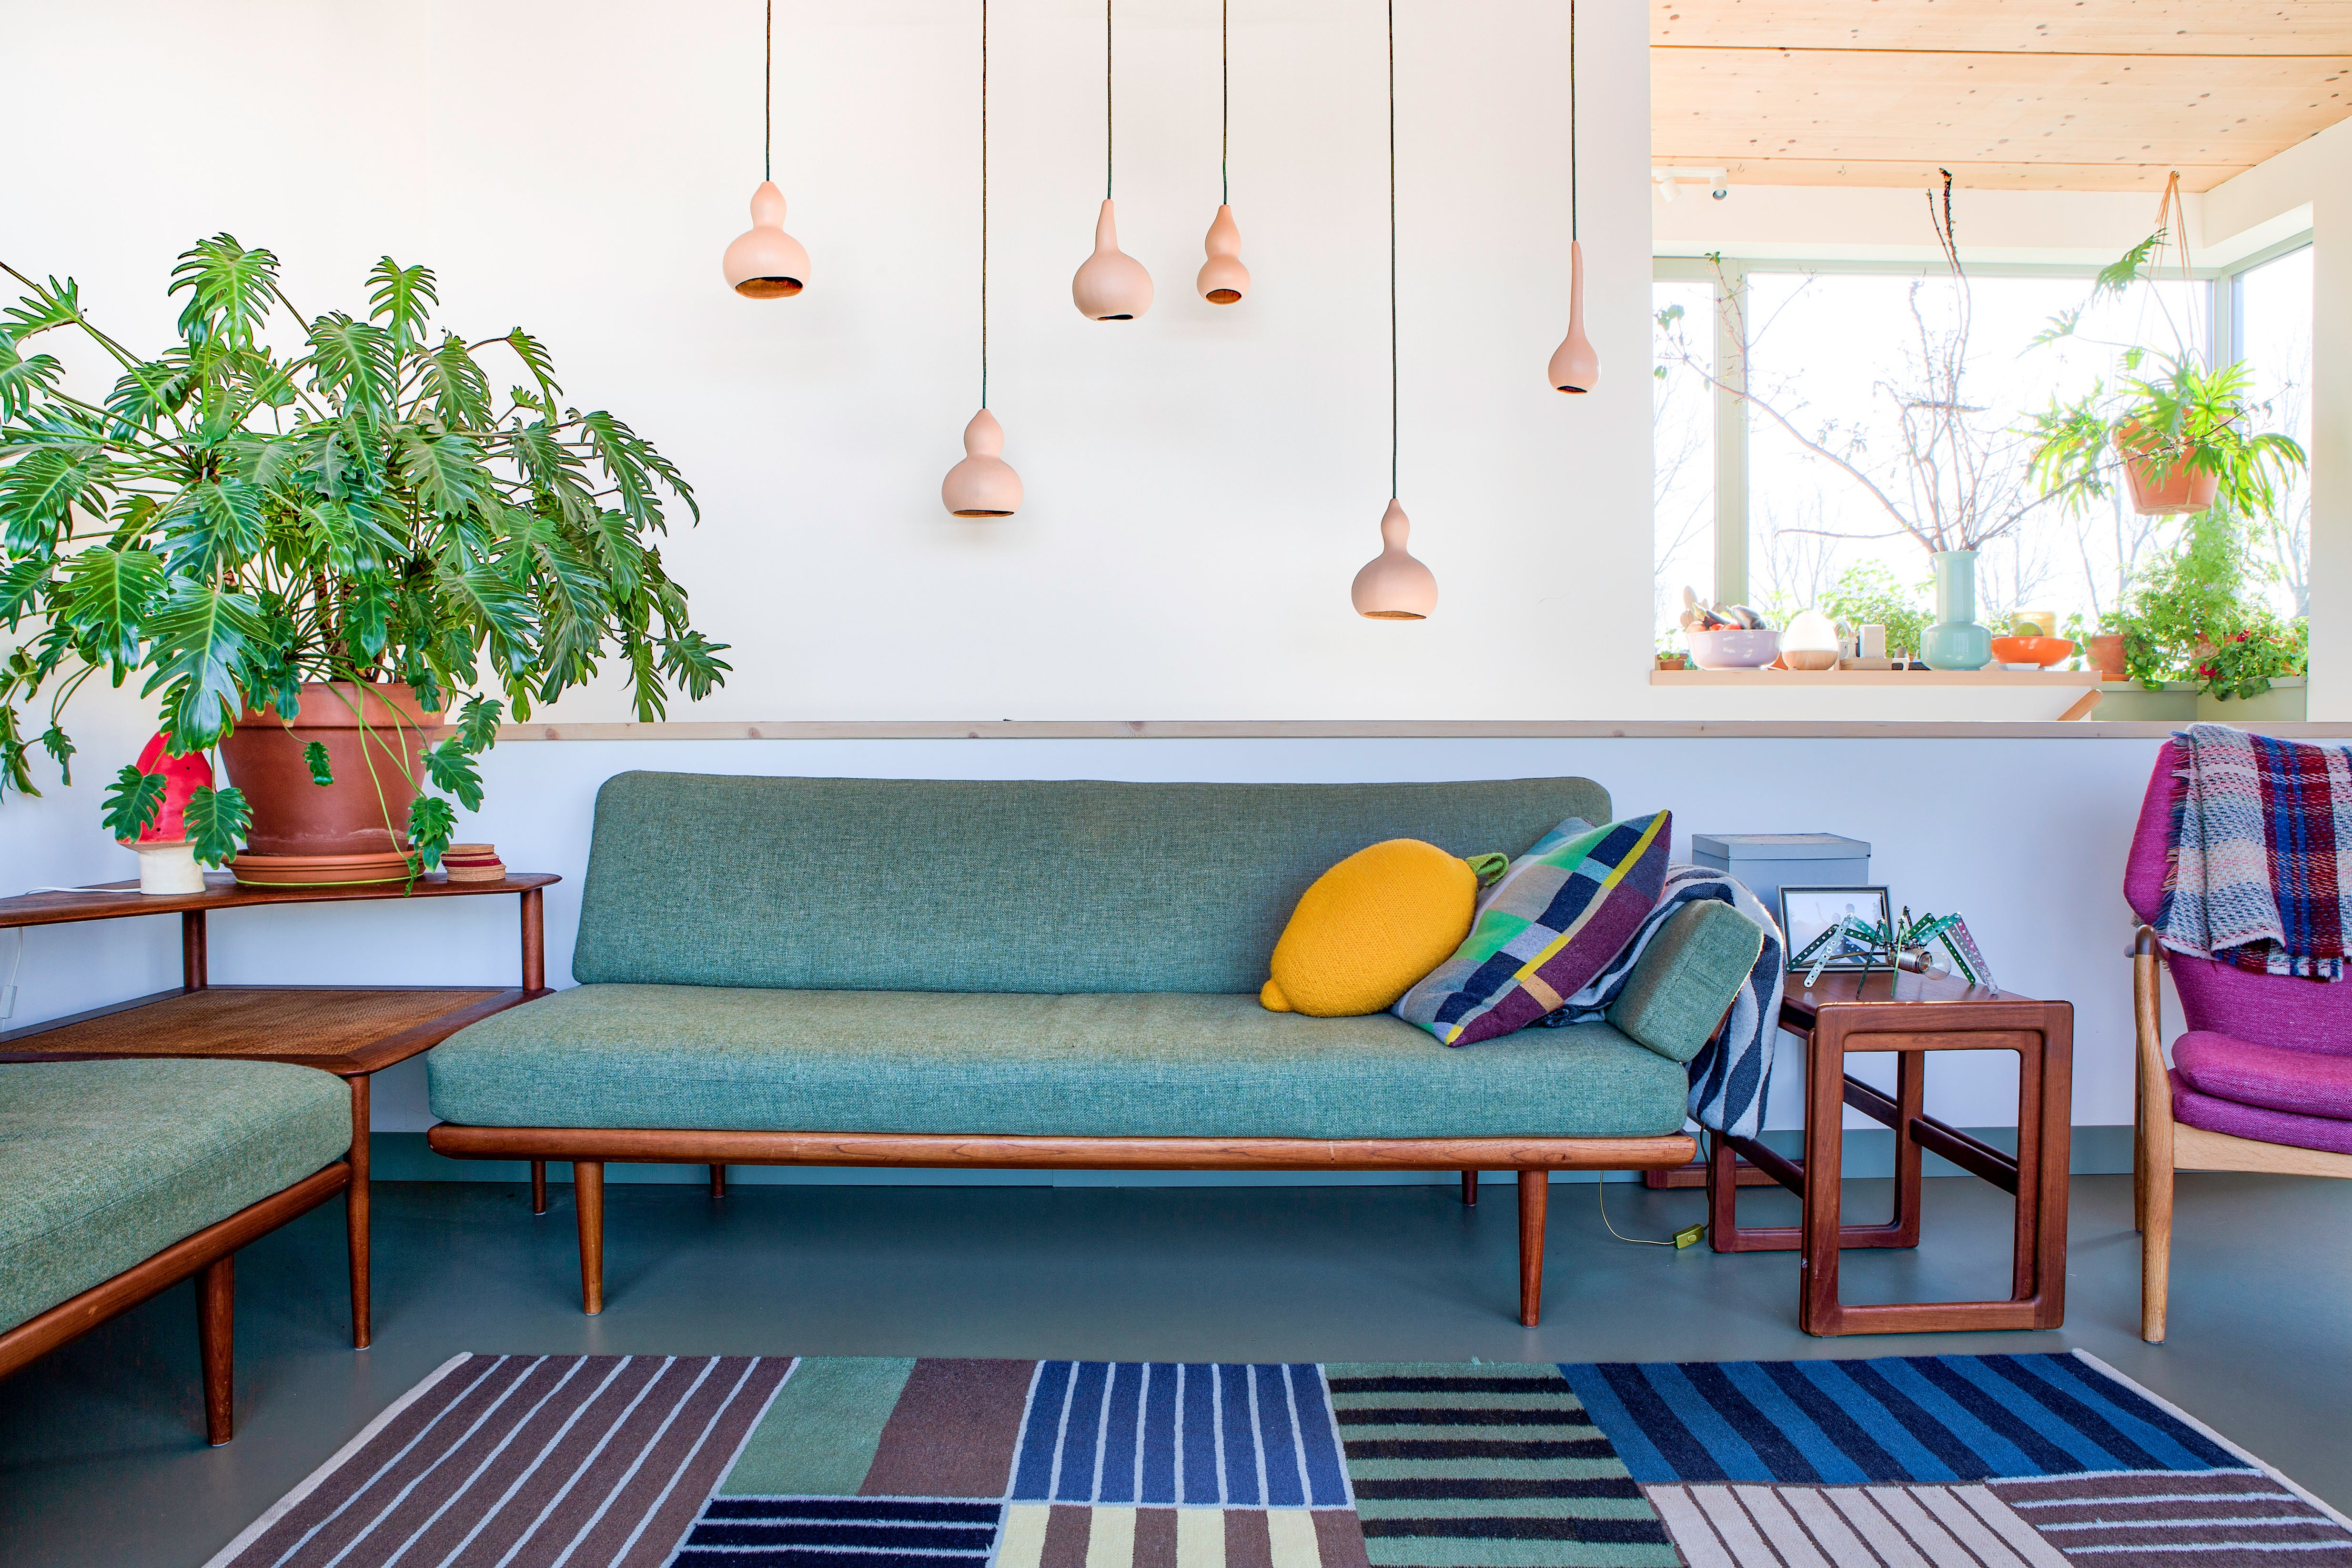 Living room with green sofa and striped blue rug